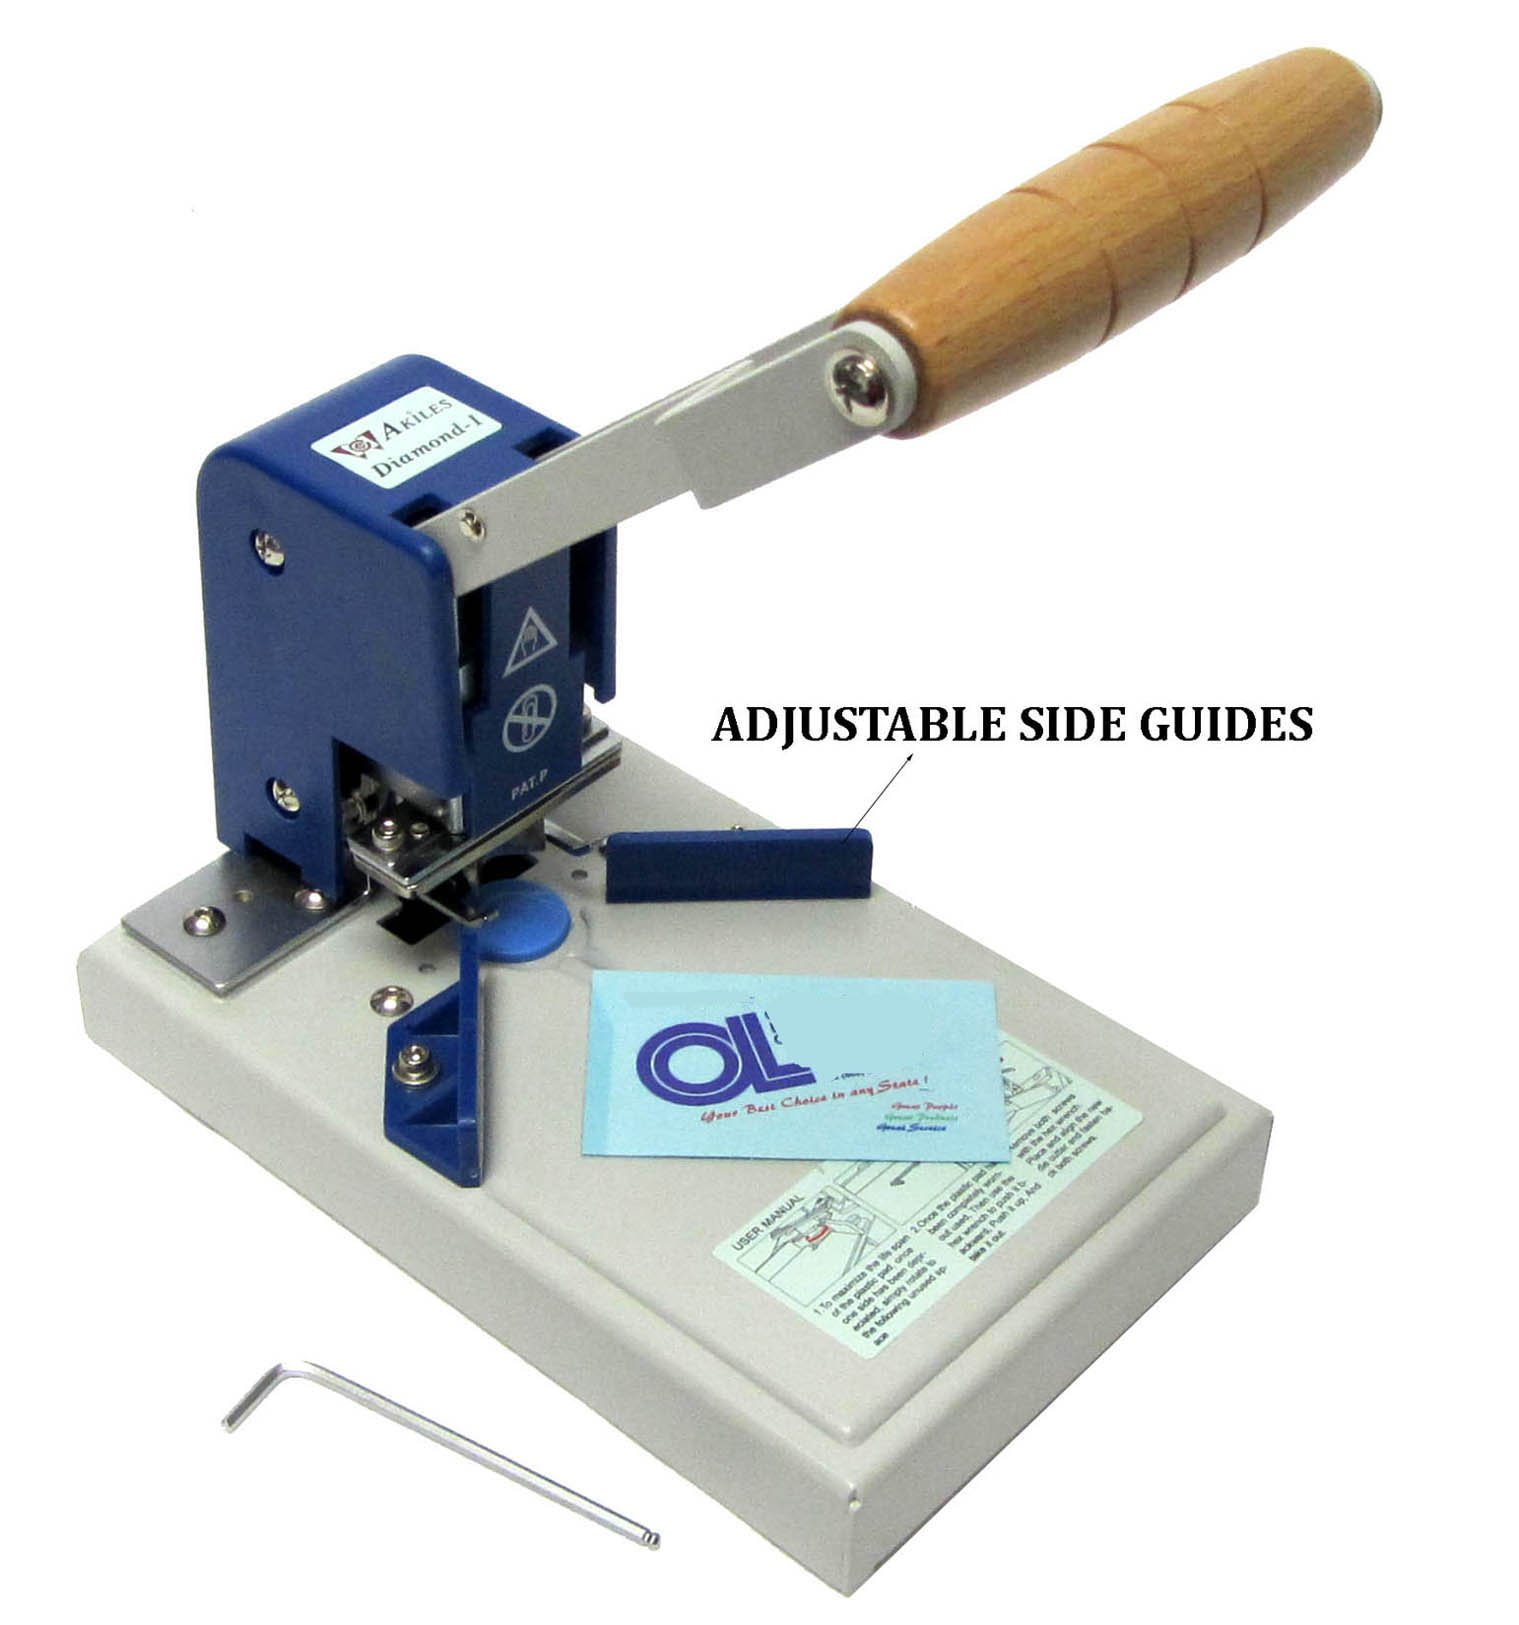 """Akiles Diamond-1 Corner Rounding Equipment, 0.4″ Maximum Capacity, Carefully crafted with only the highest quality component, Waste Backset, Plastic Pads, Radius Alignment Guide, """"L"""" Guide"""